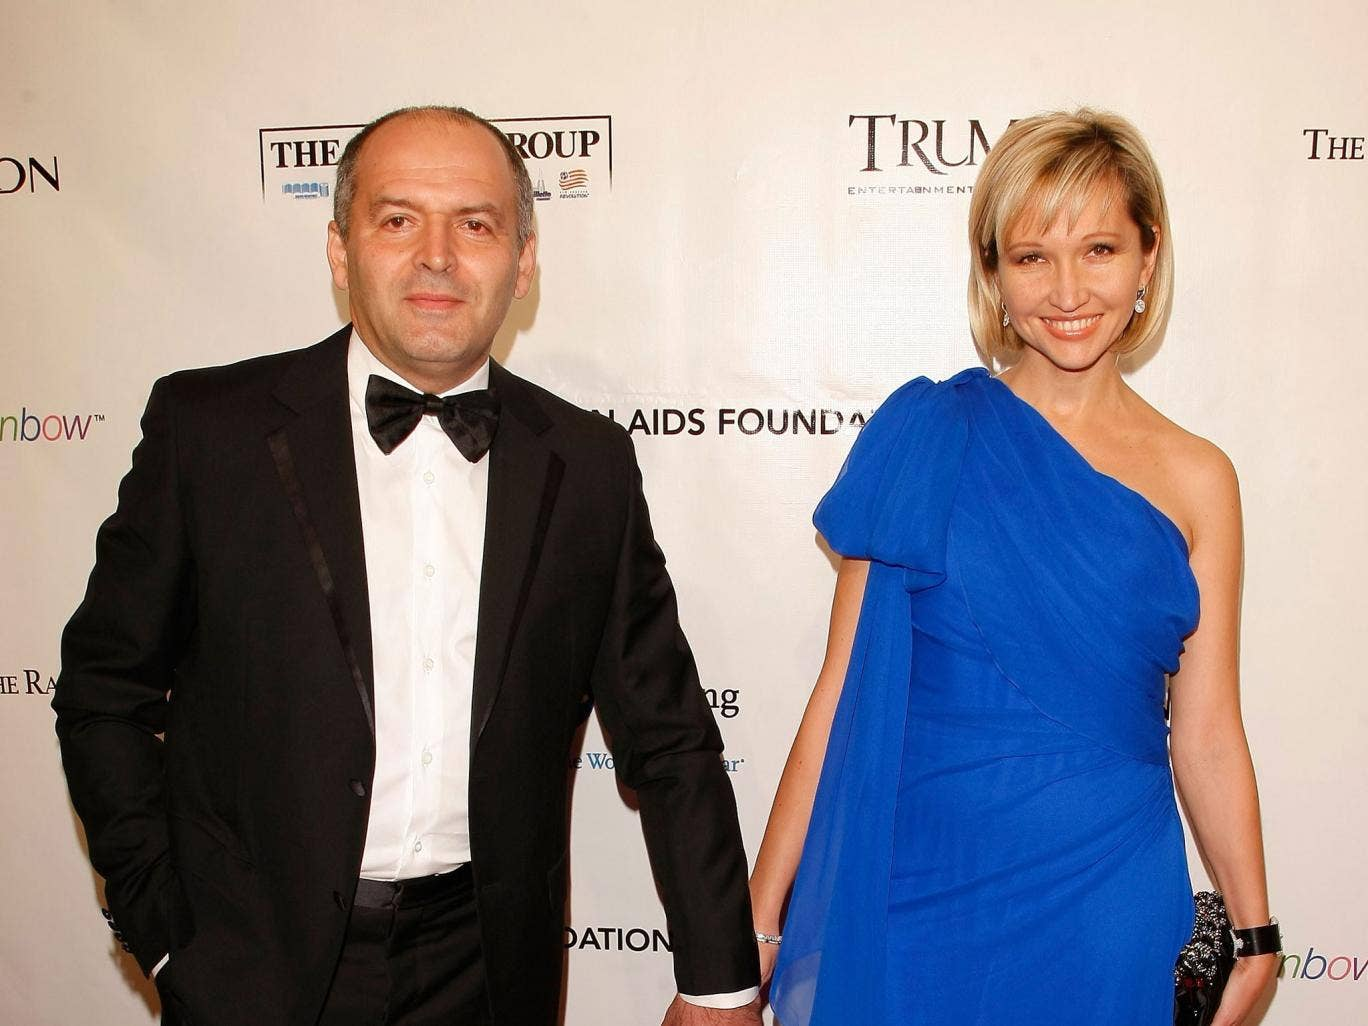 Billionaire politician Victor Pinchuk, here with his wife Elena, brings the 'world's biggest visionaries to Ukraine'